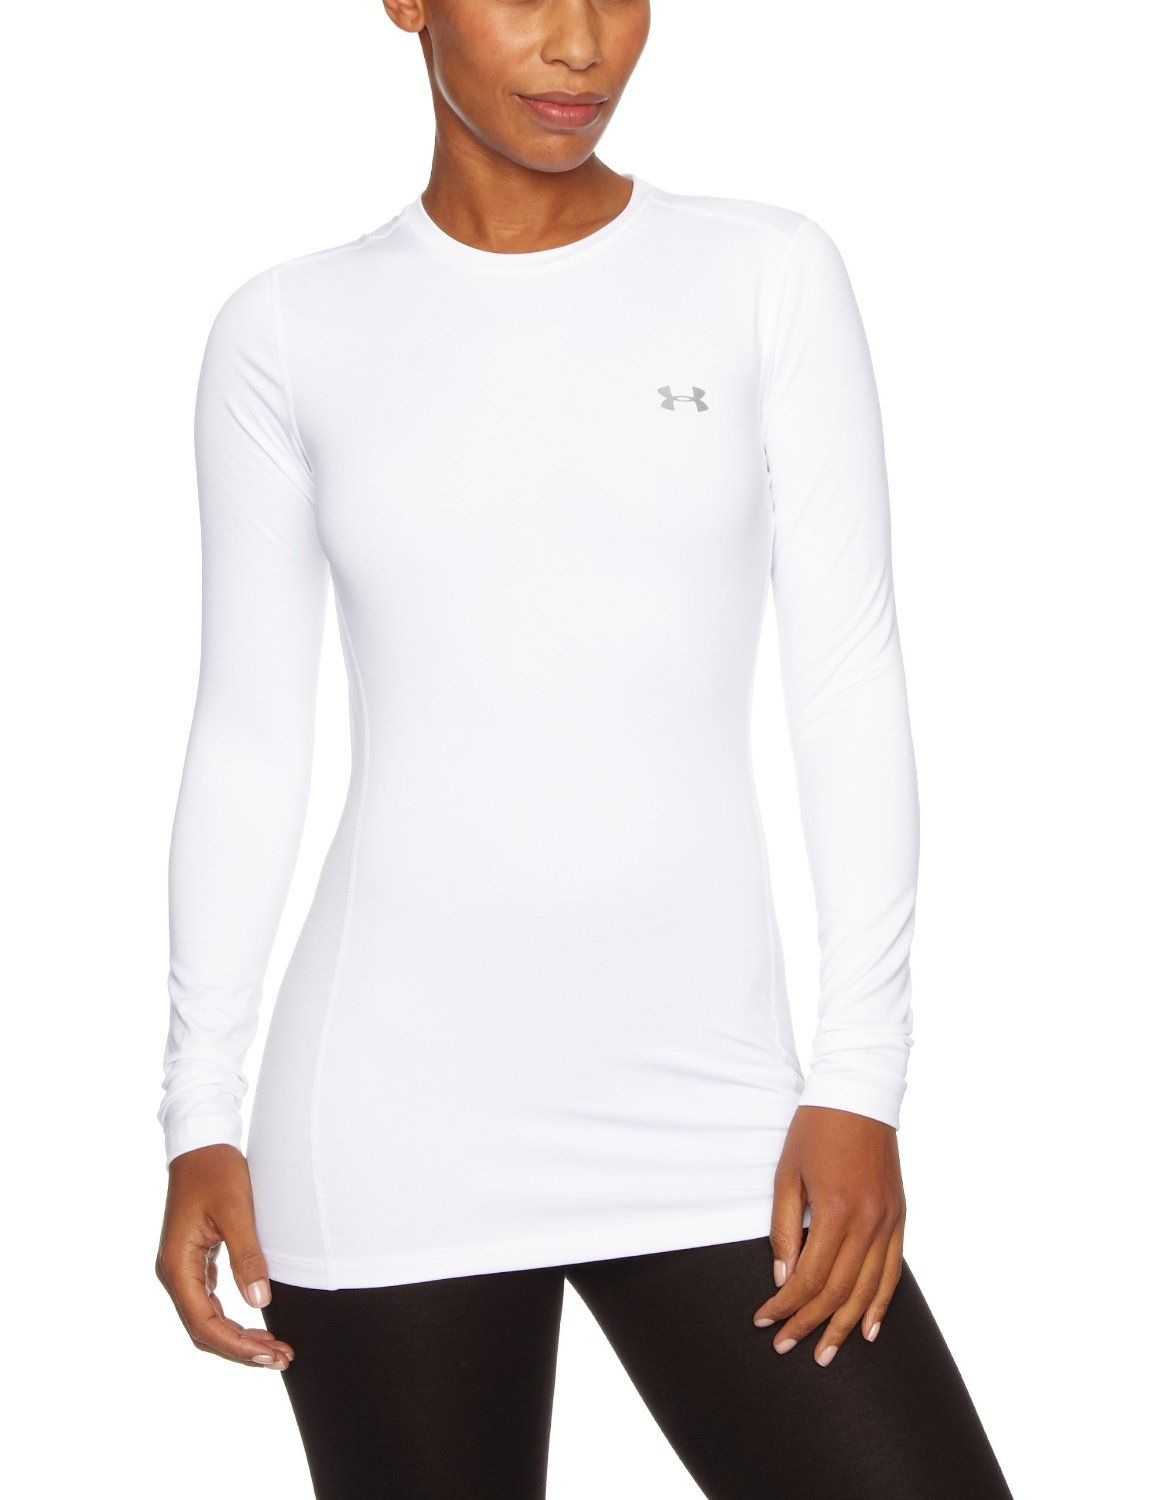 56c3e45a20400 UnderArmour Women's The CG Fitted Crew: Amazon.co.uk: Sports ...